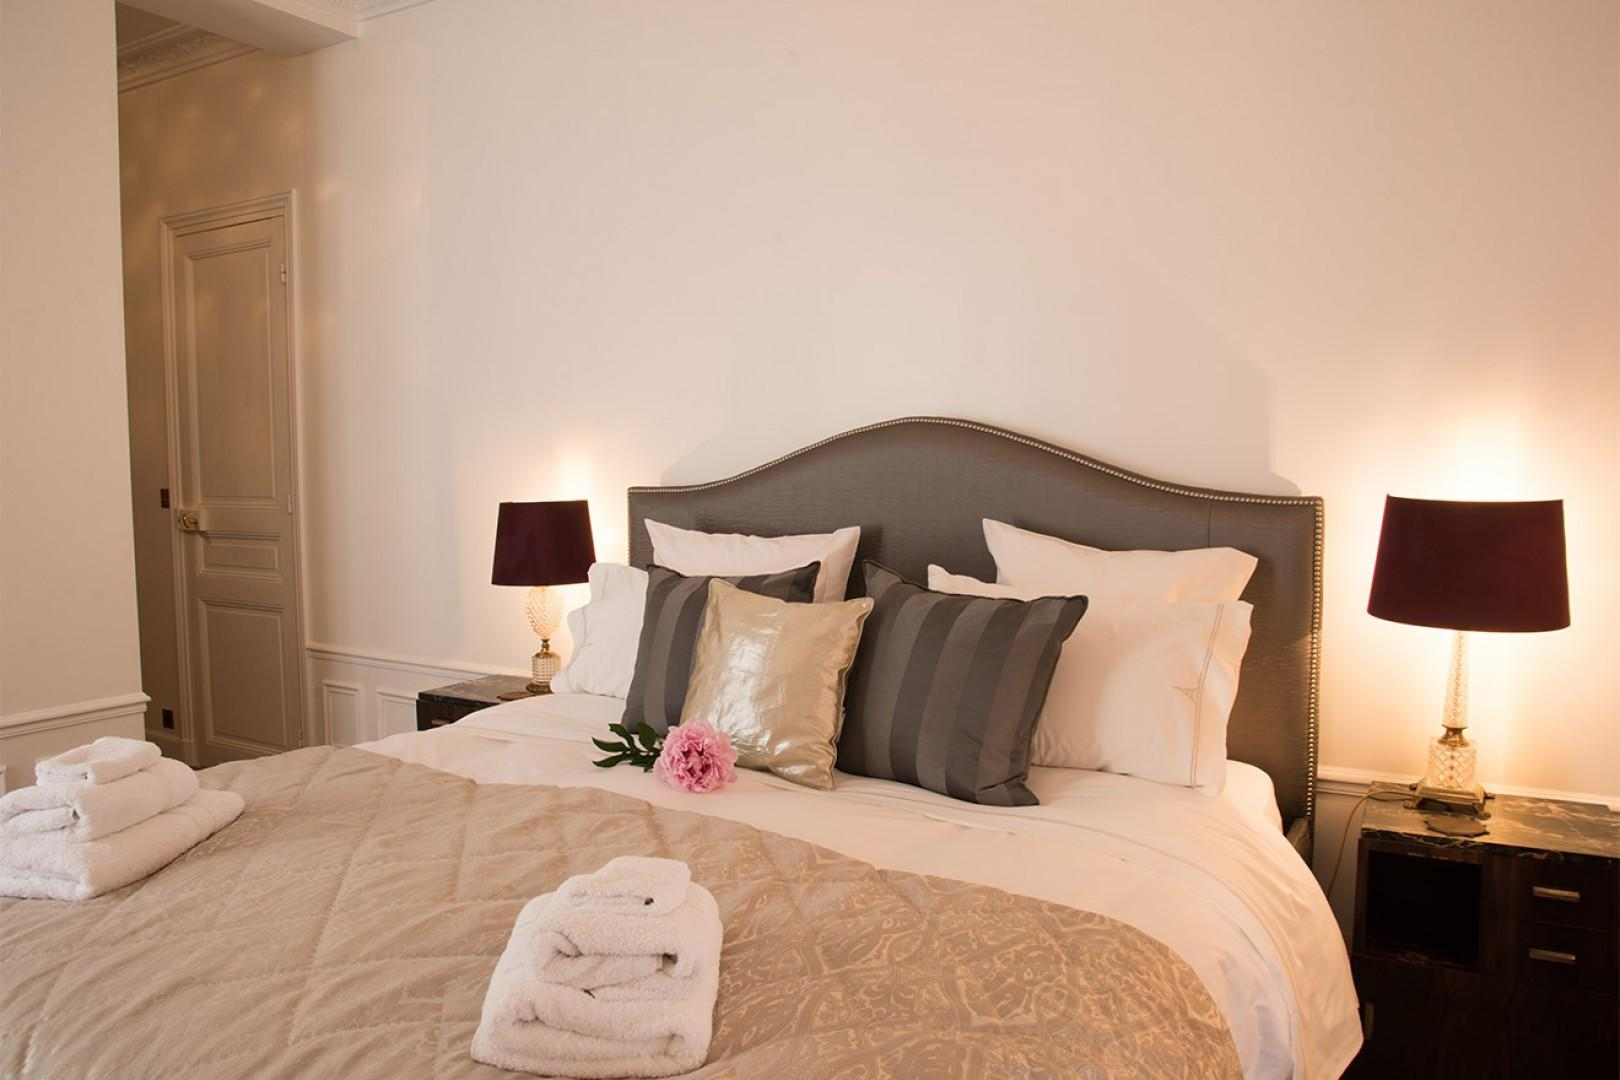 Sink into the sumptuous bed with luxurious linens.